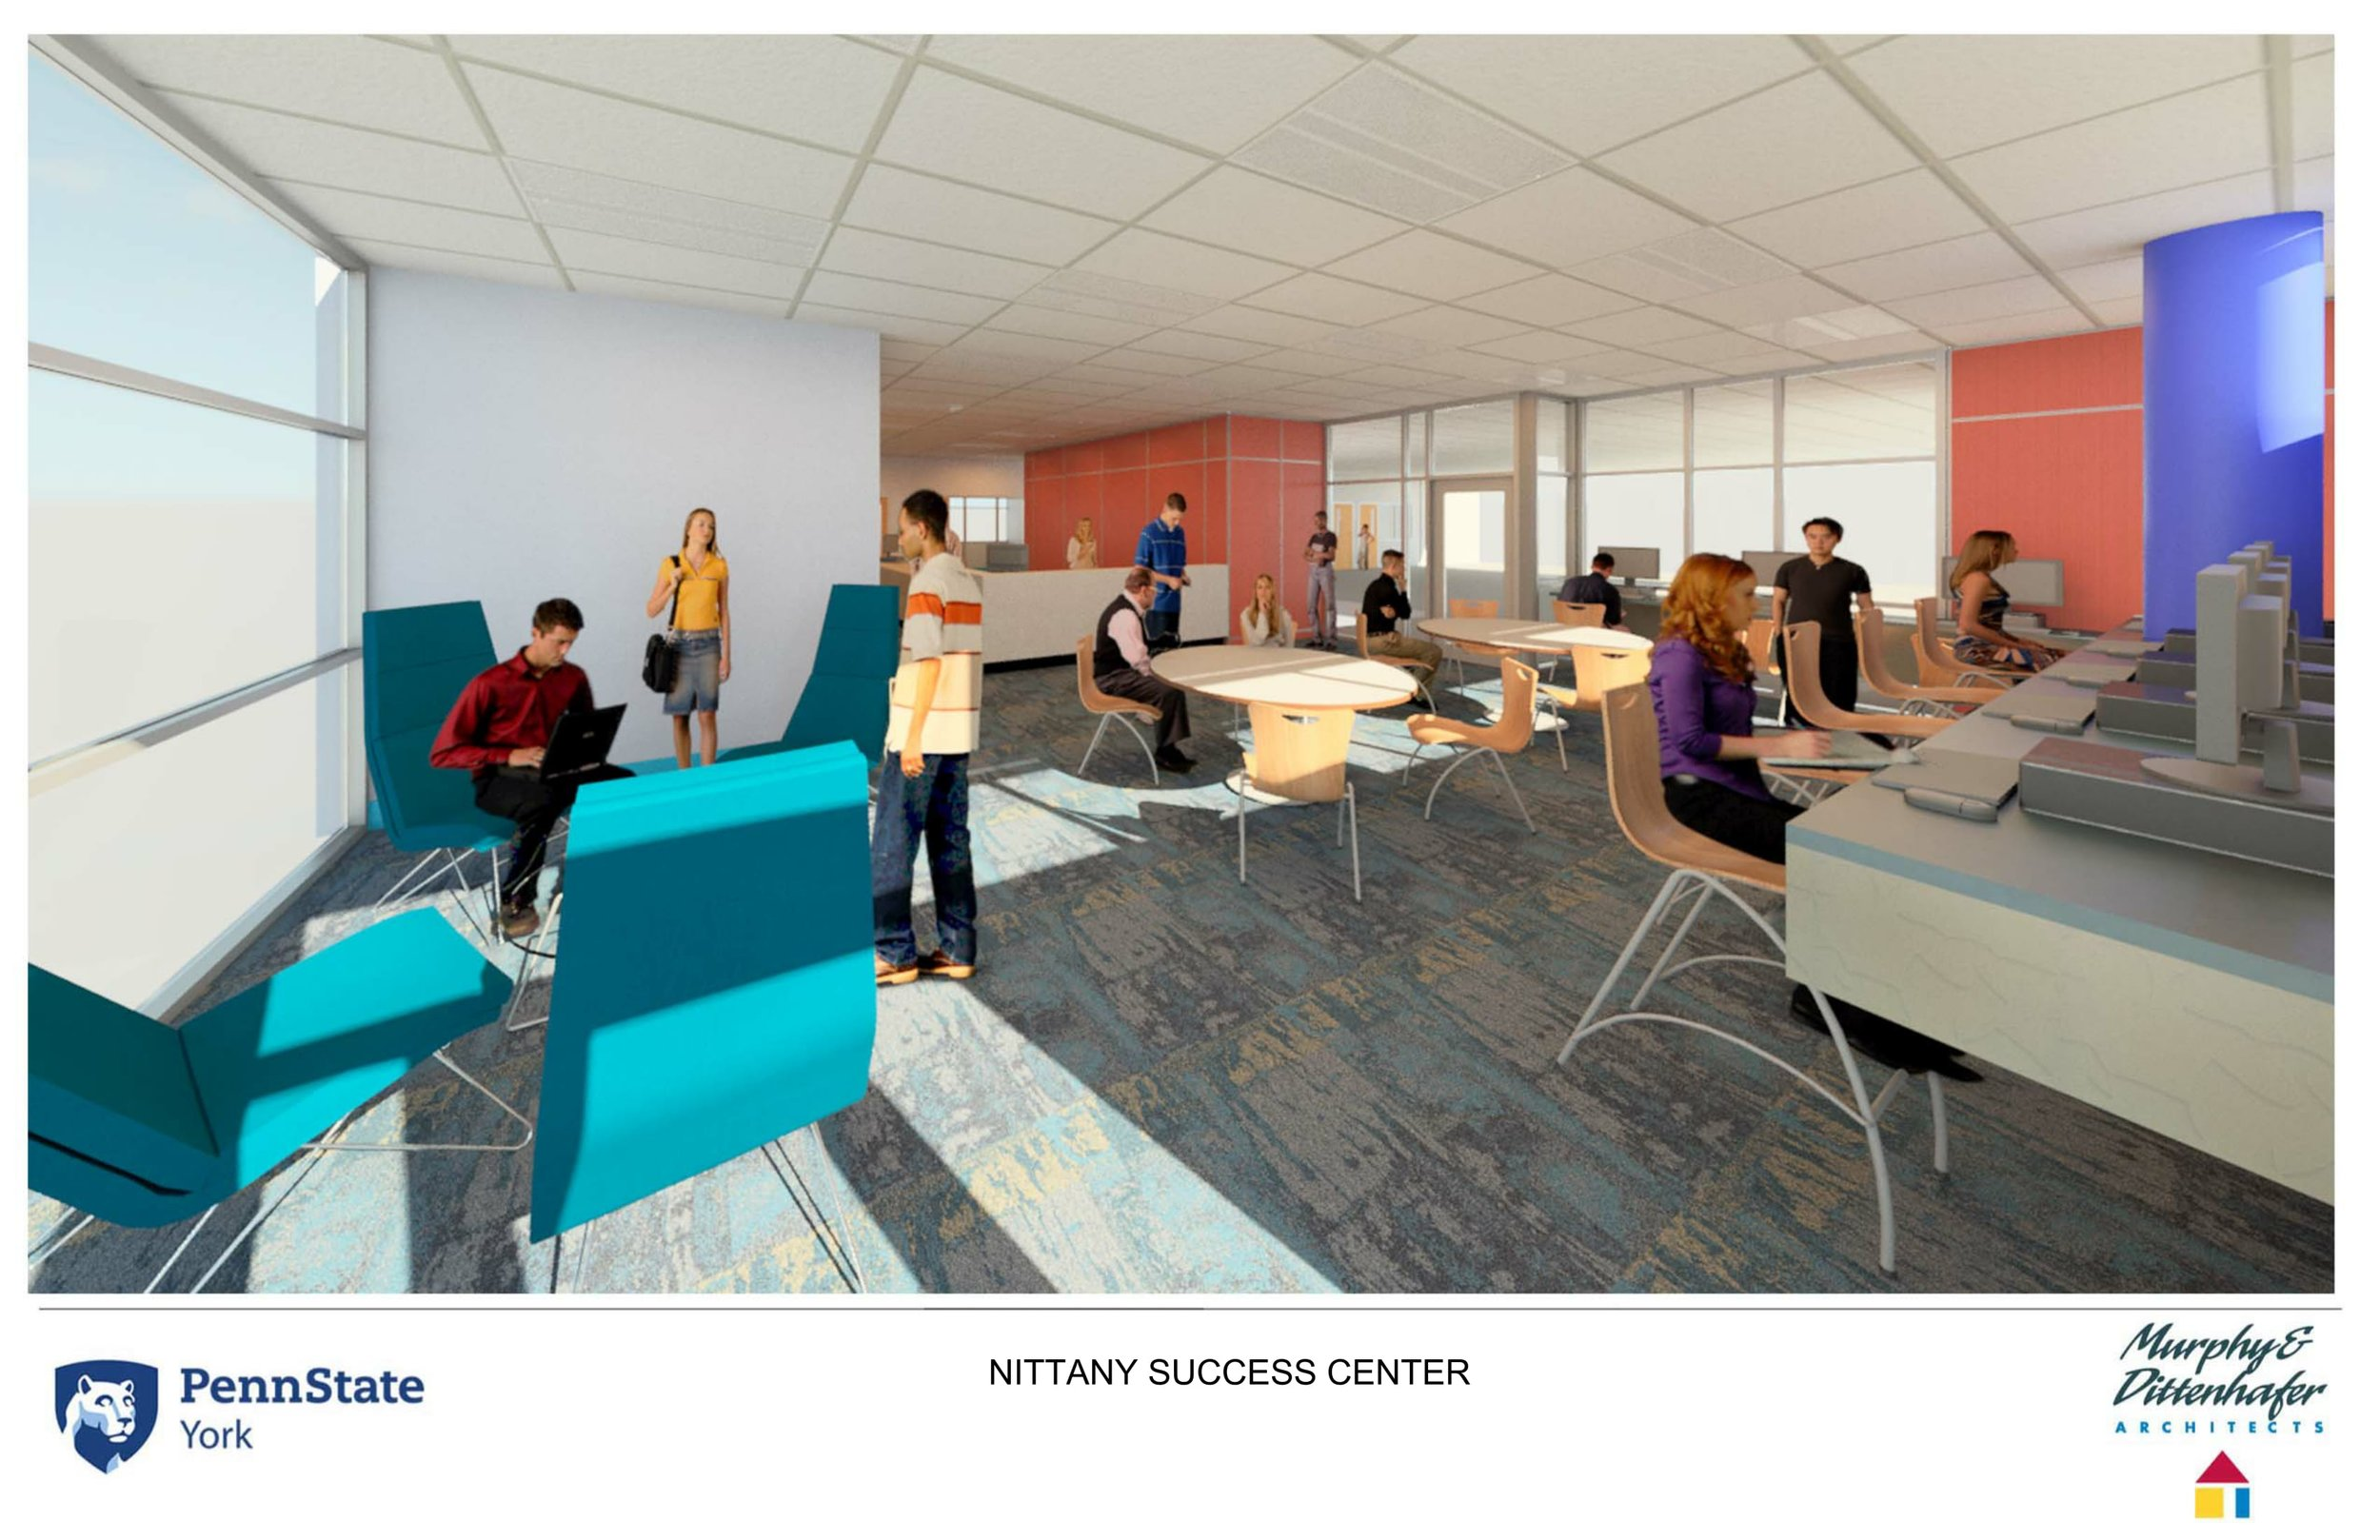 Nittany Success Center